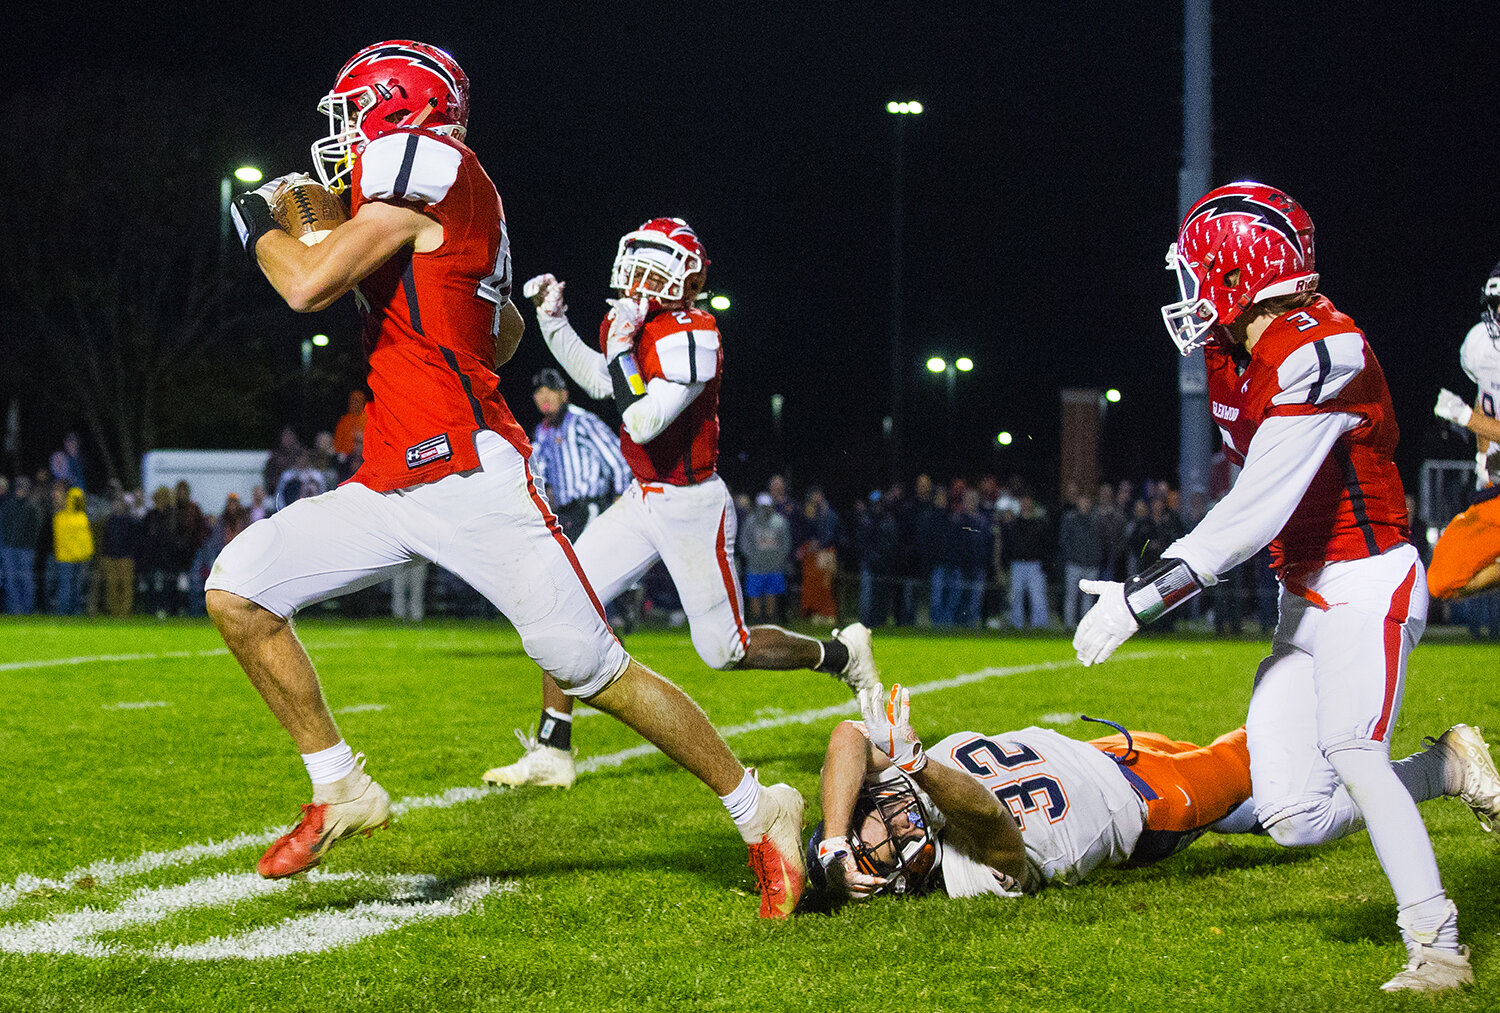 Glenwood's Tyler Burris (44)  clears the last Rochester defender on his way to the endzone at Glenwood High School Friday, Oct. 25, 2019. [Ted Schurter/The State Journal-Register]